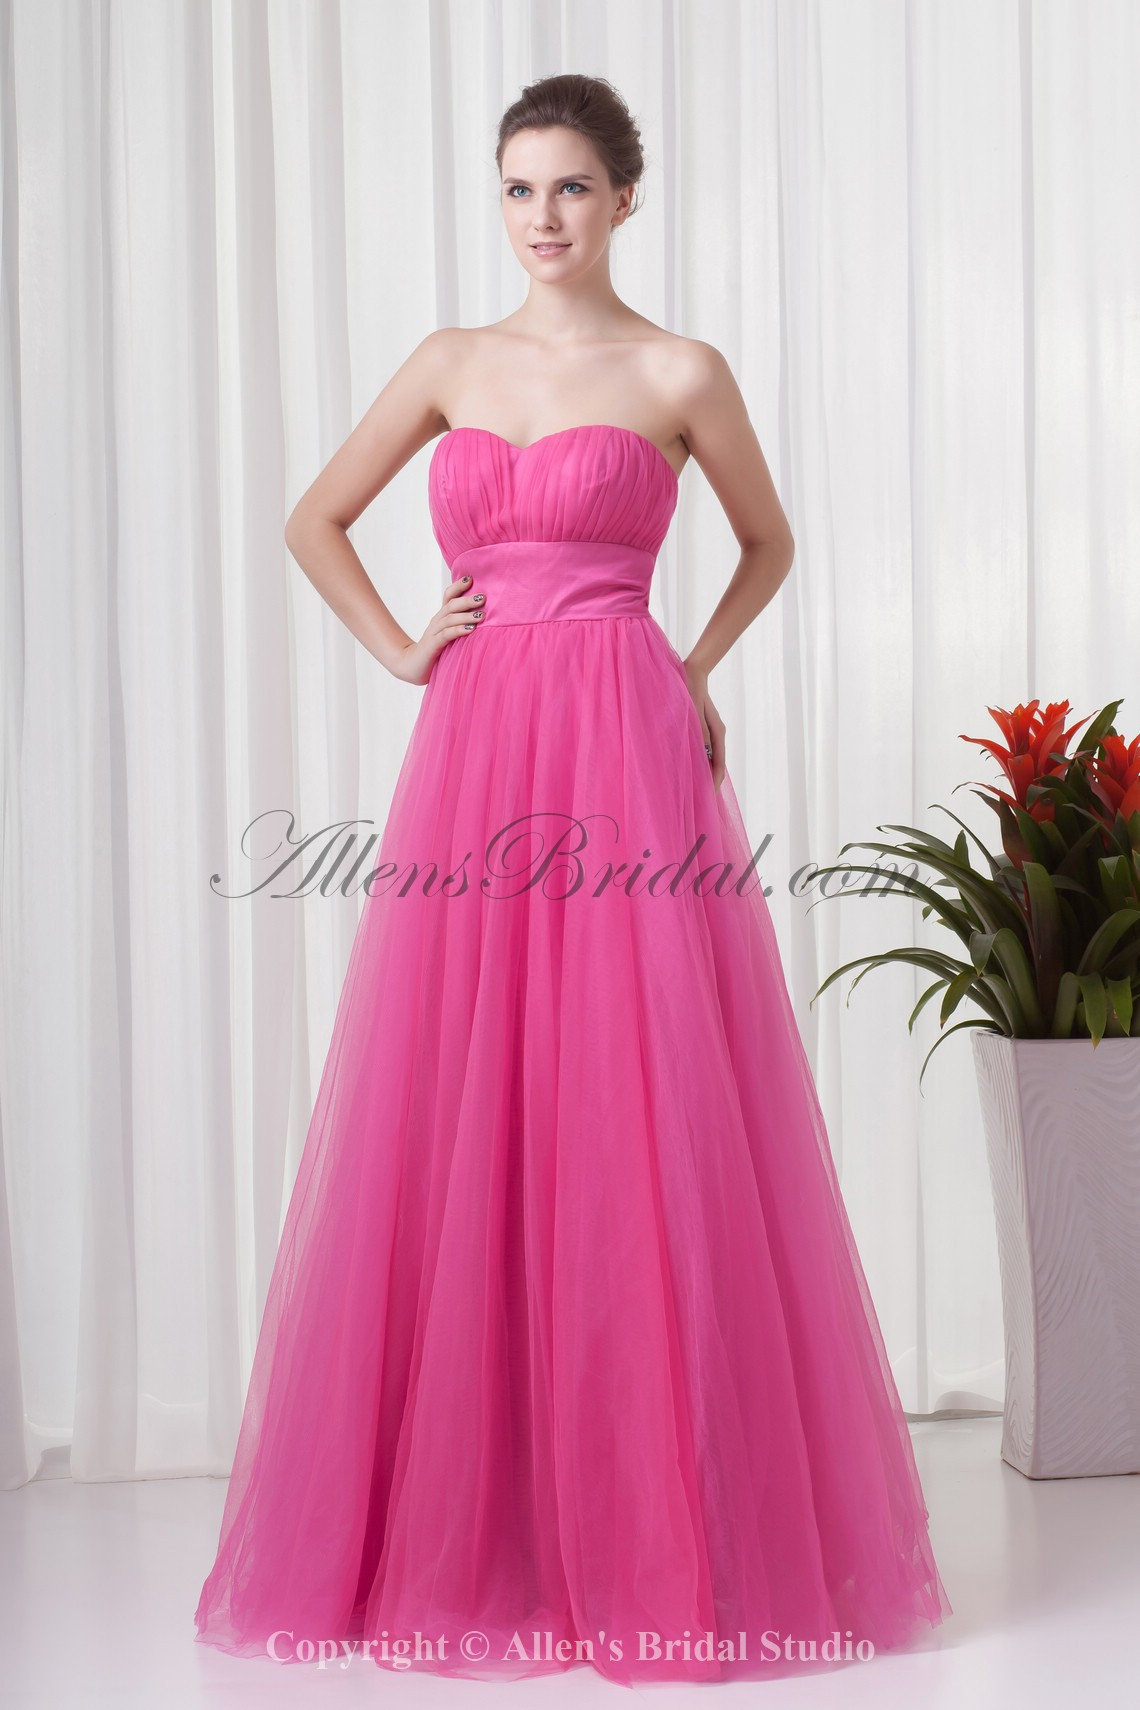 /305-2435/net-sweetheart-neckline-a-line-floor-length-sash-prom-dress.jpg